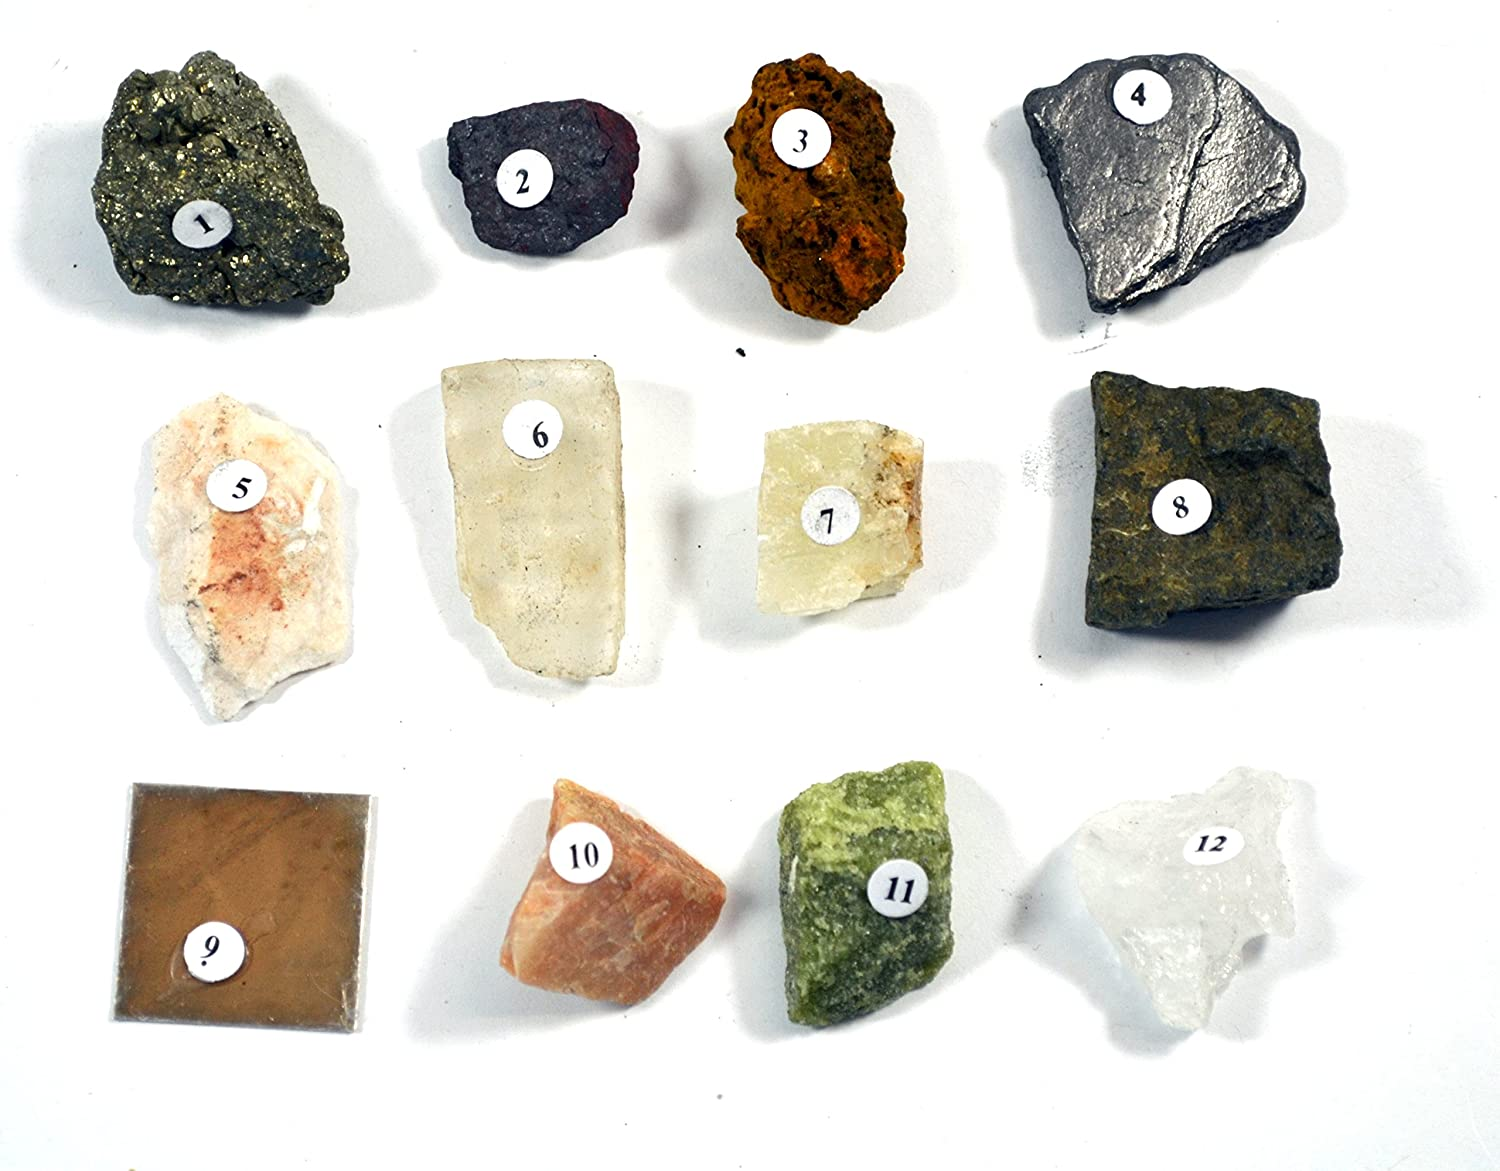 1 Contains 12 specimens measuring approx Physical Properties of Minerals Kit - Eisco Labs 3cm